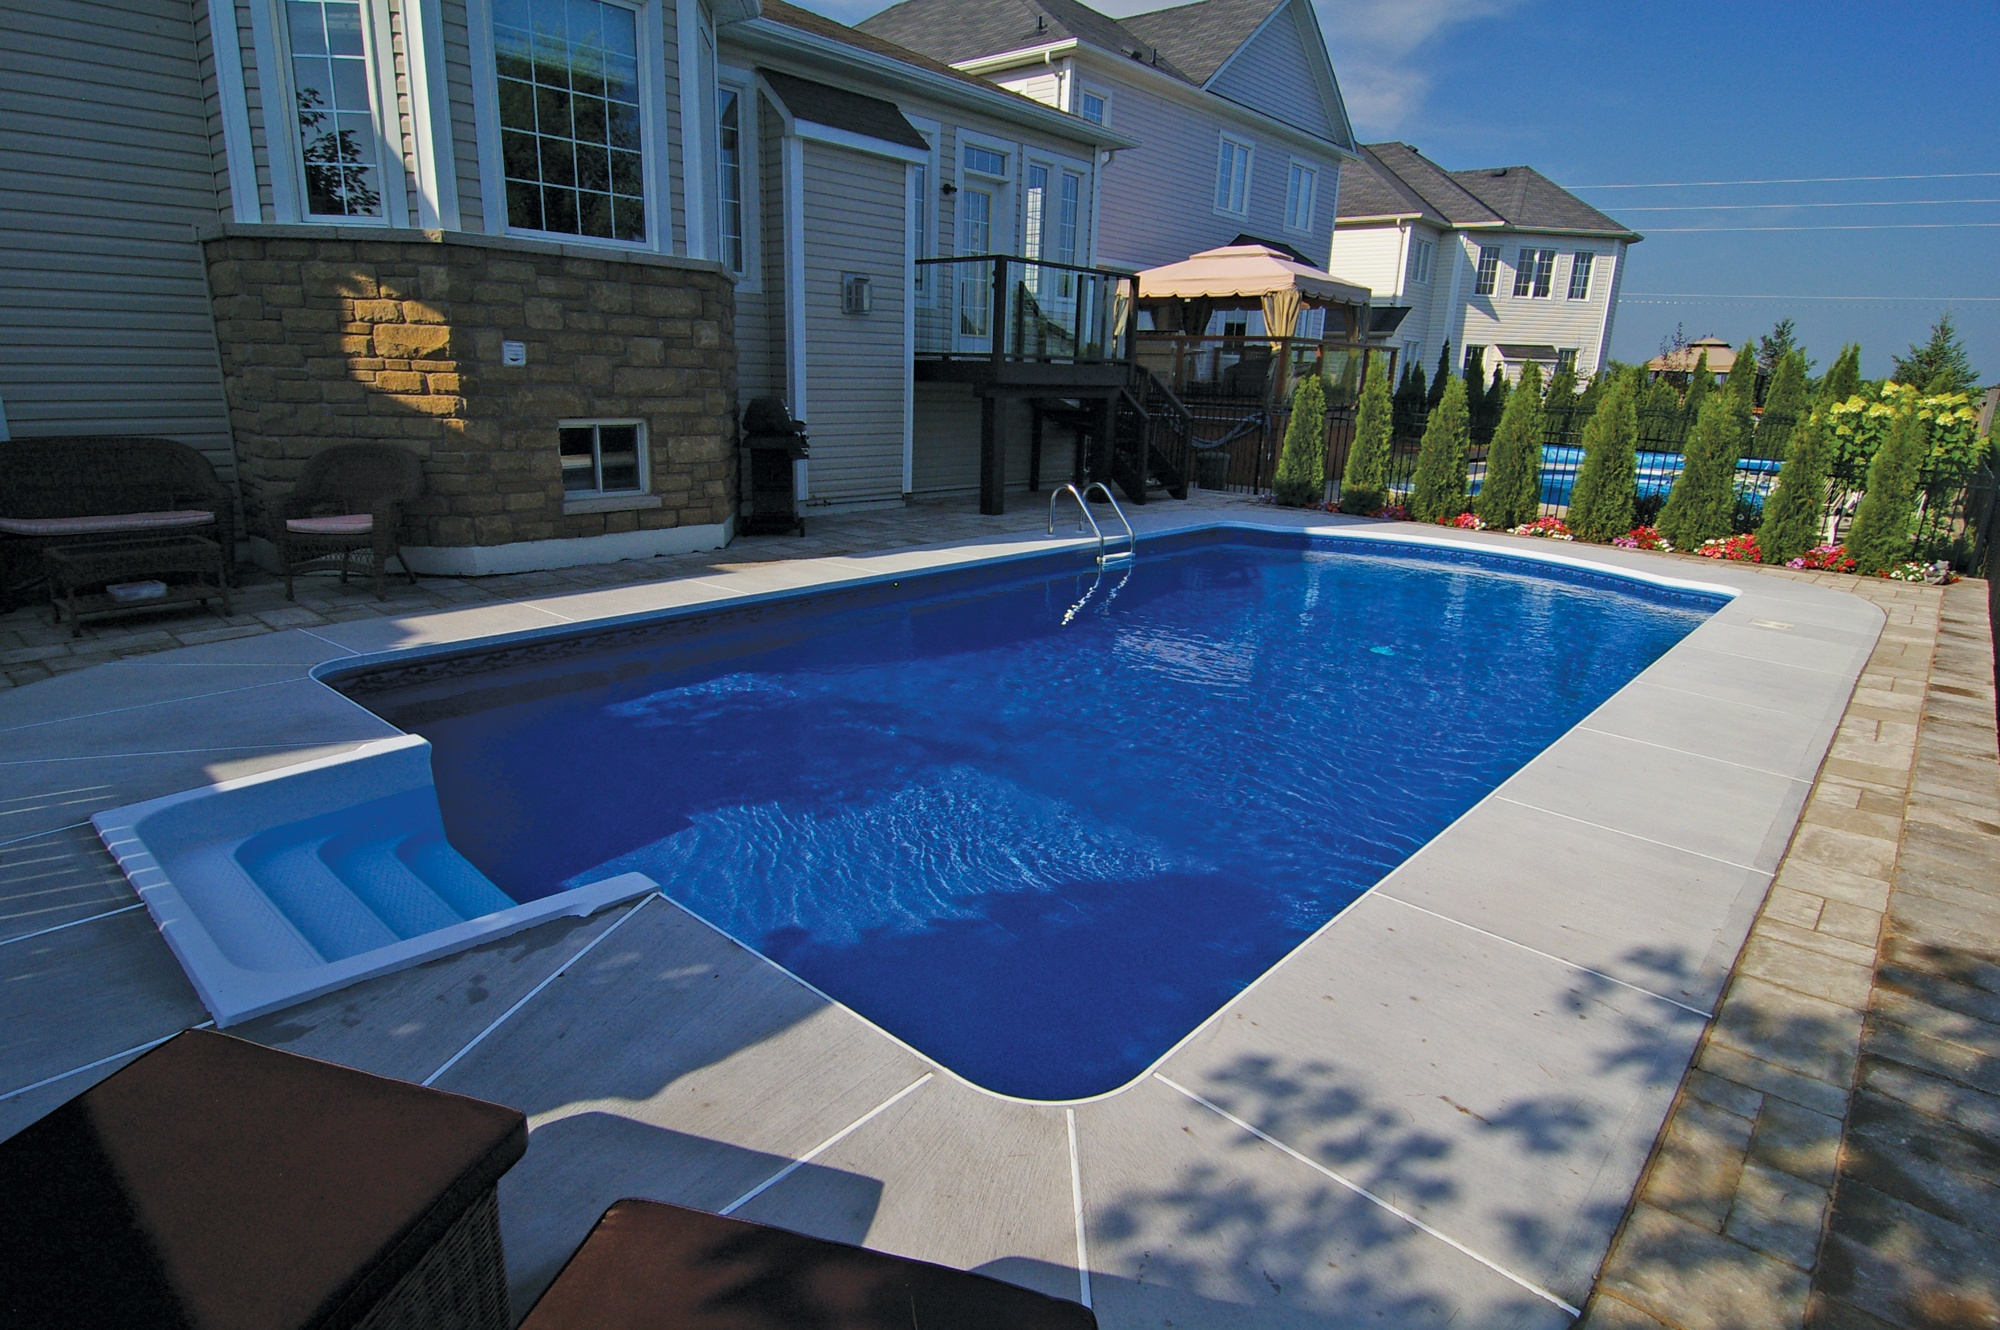 3 Top Benefits of a Polymer Wall Swimming Pool